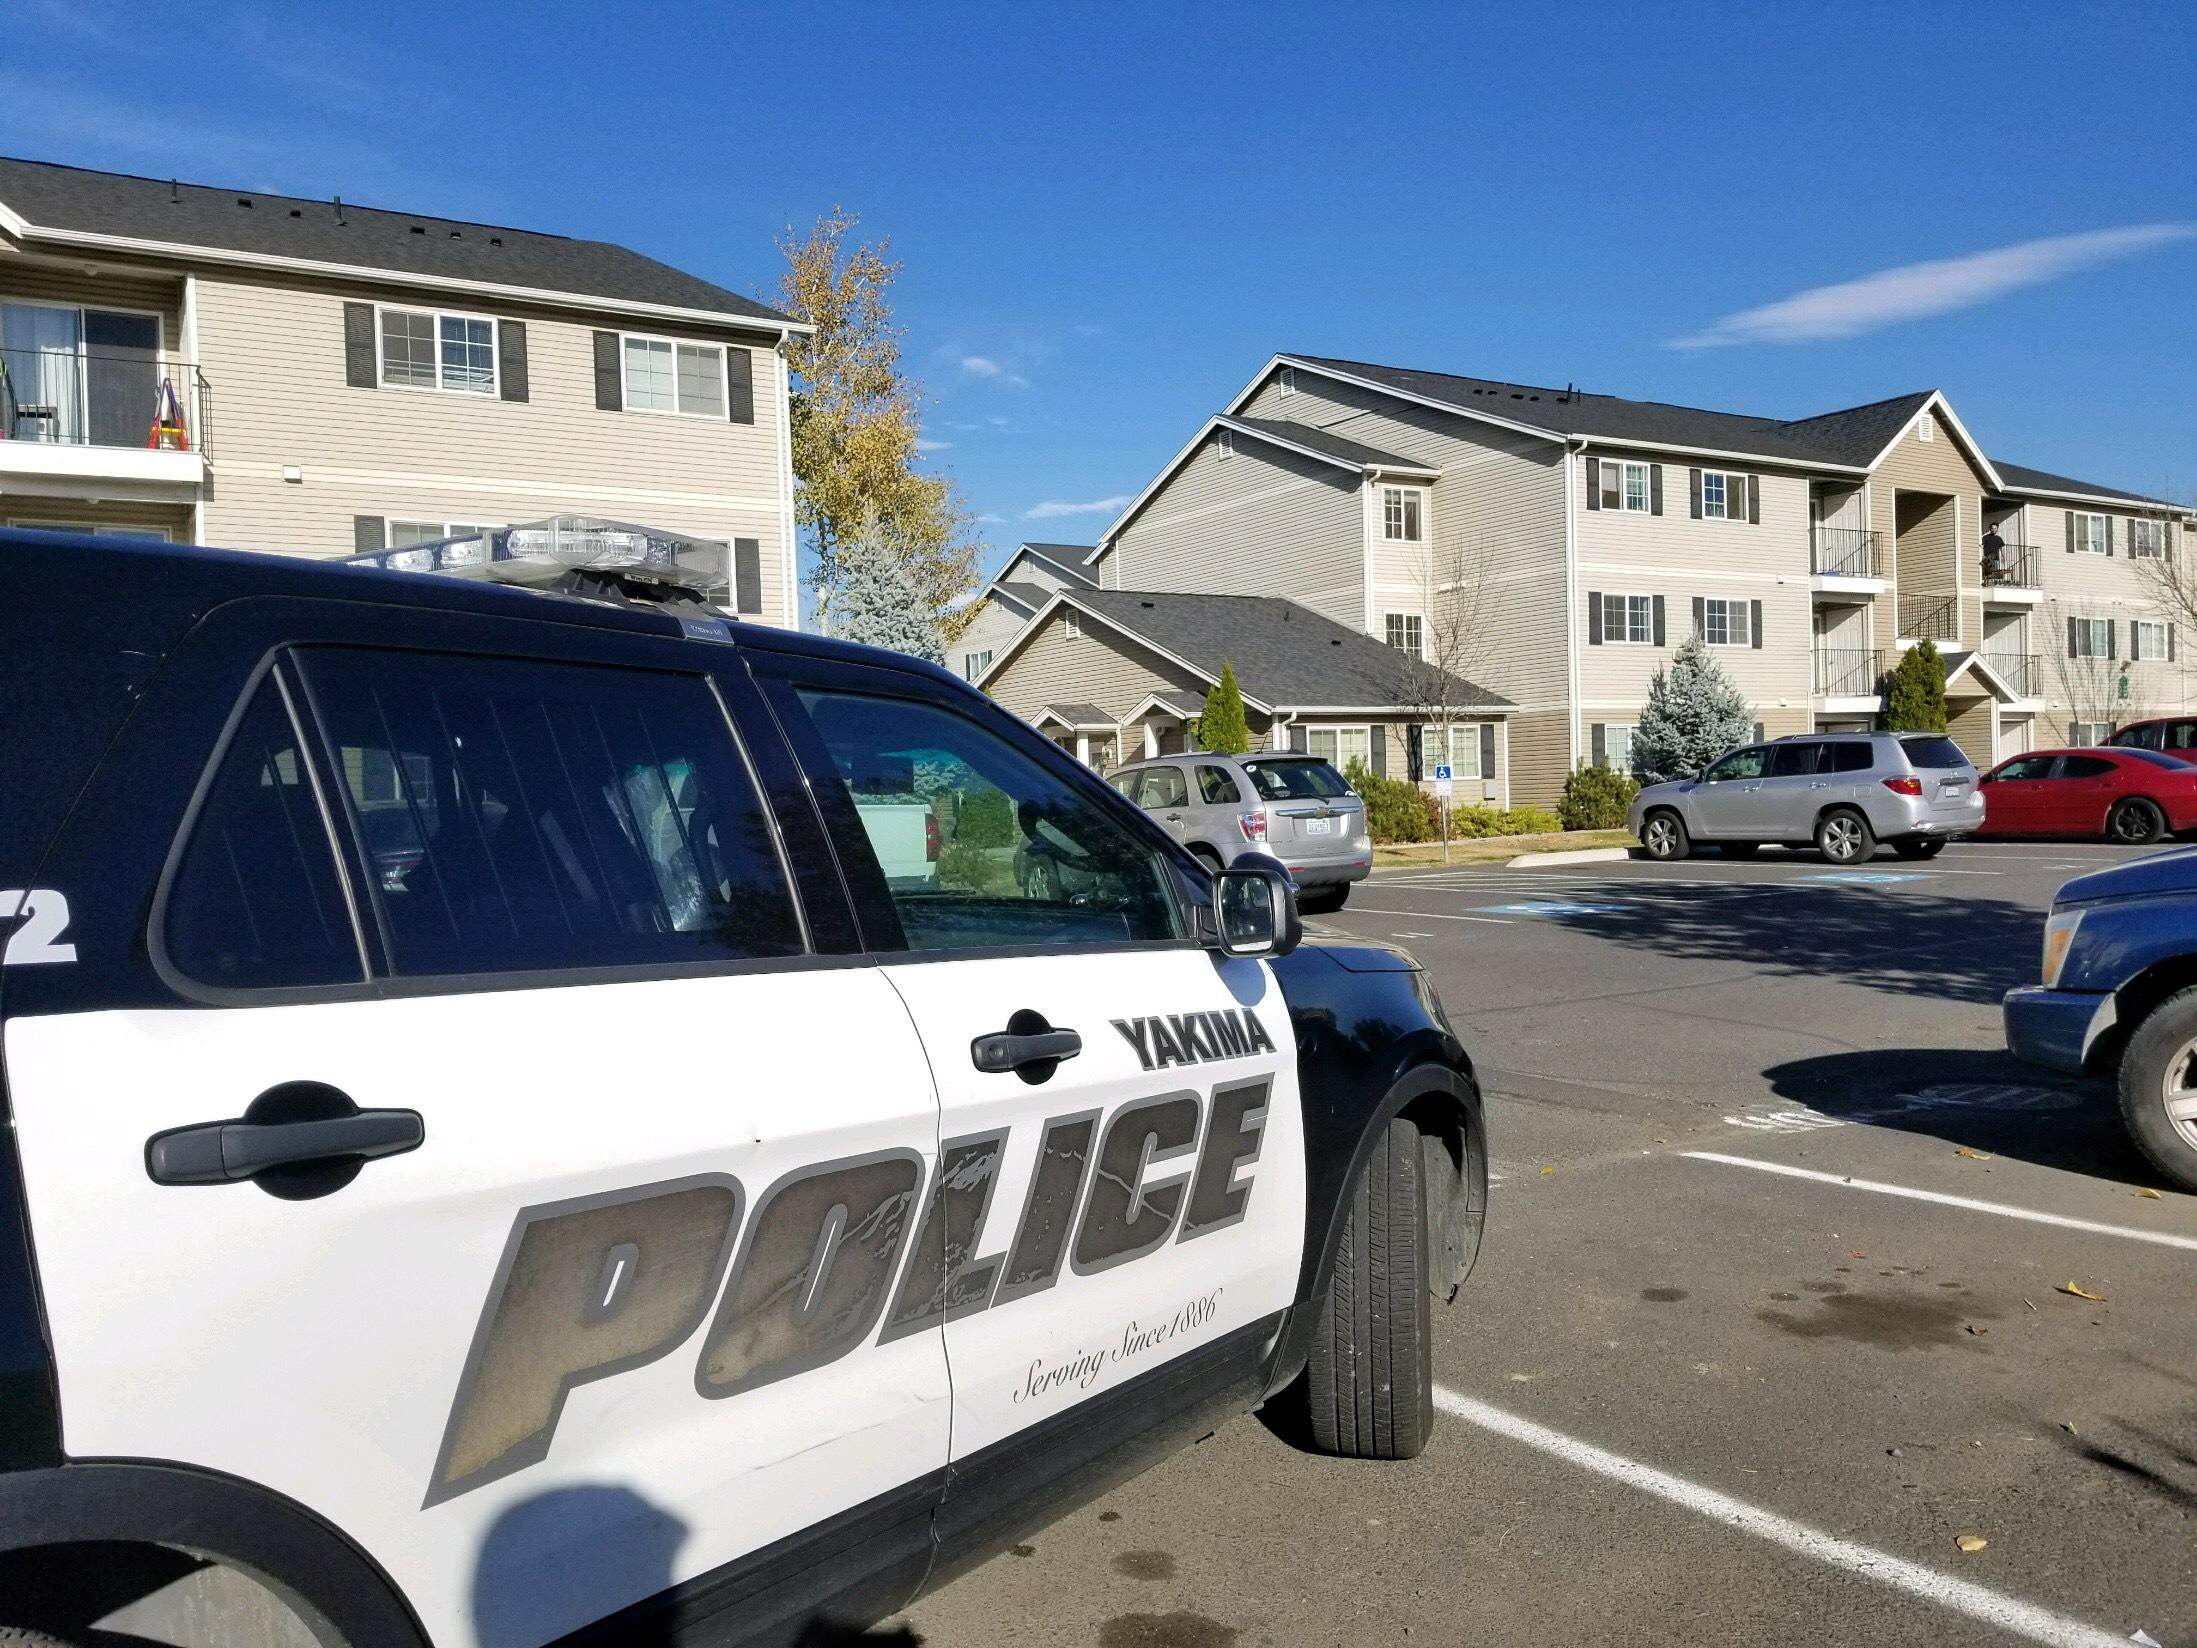 Police: One person shot at South Fair apartment complex